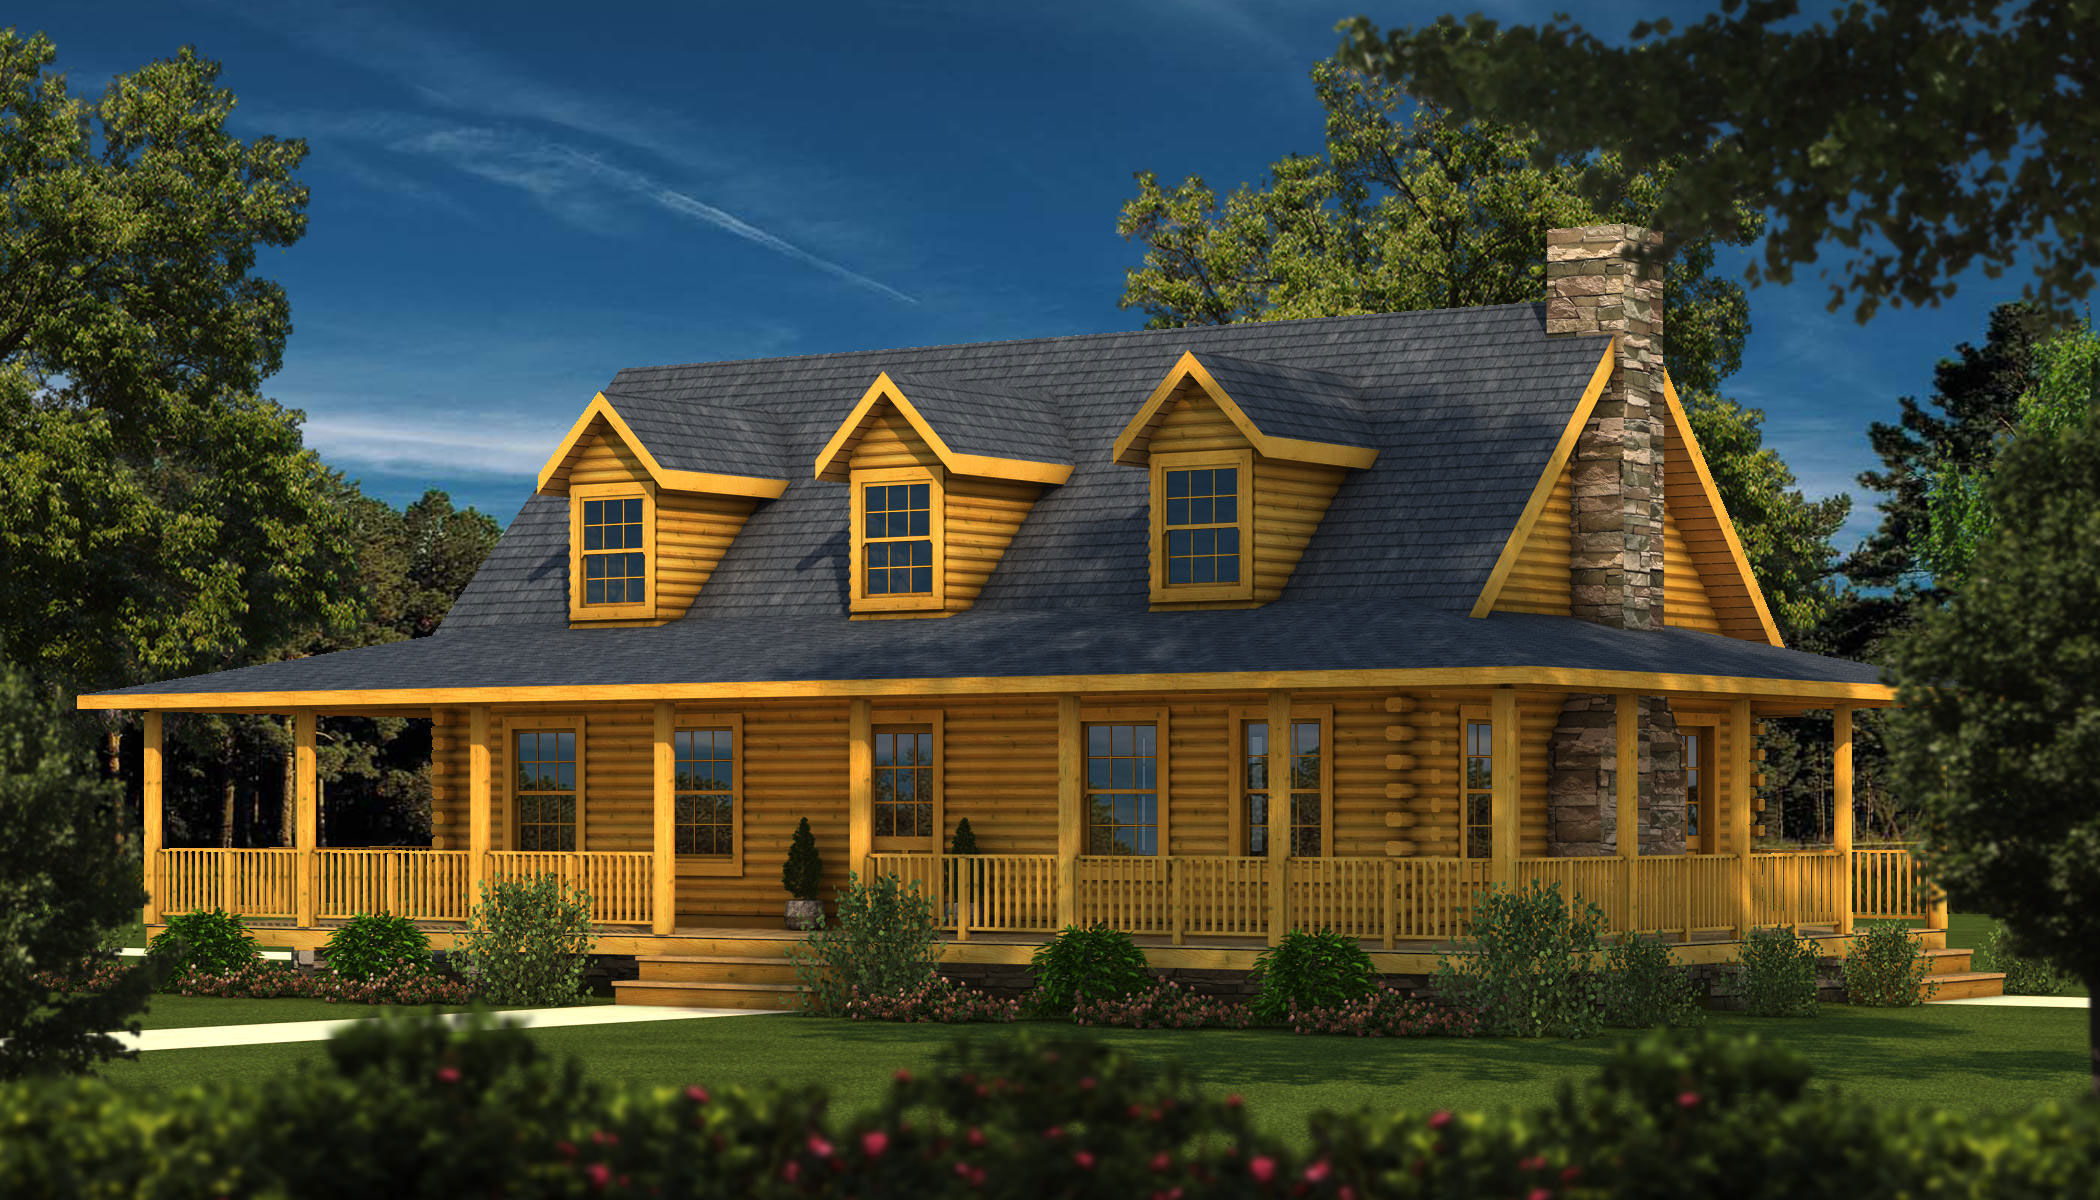 Charleston ii plans information southland log homes Southland log homes